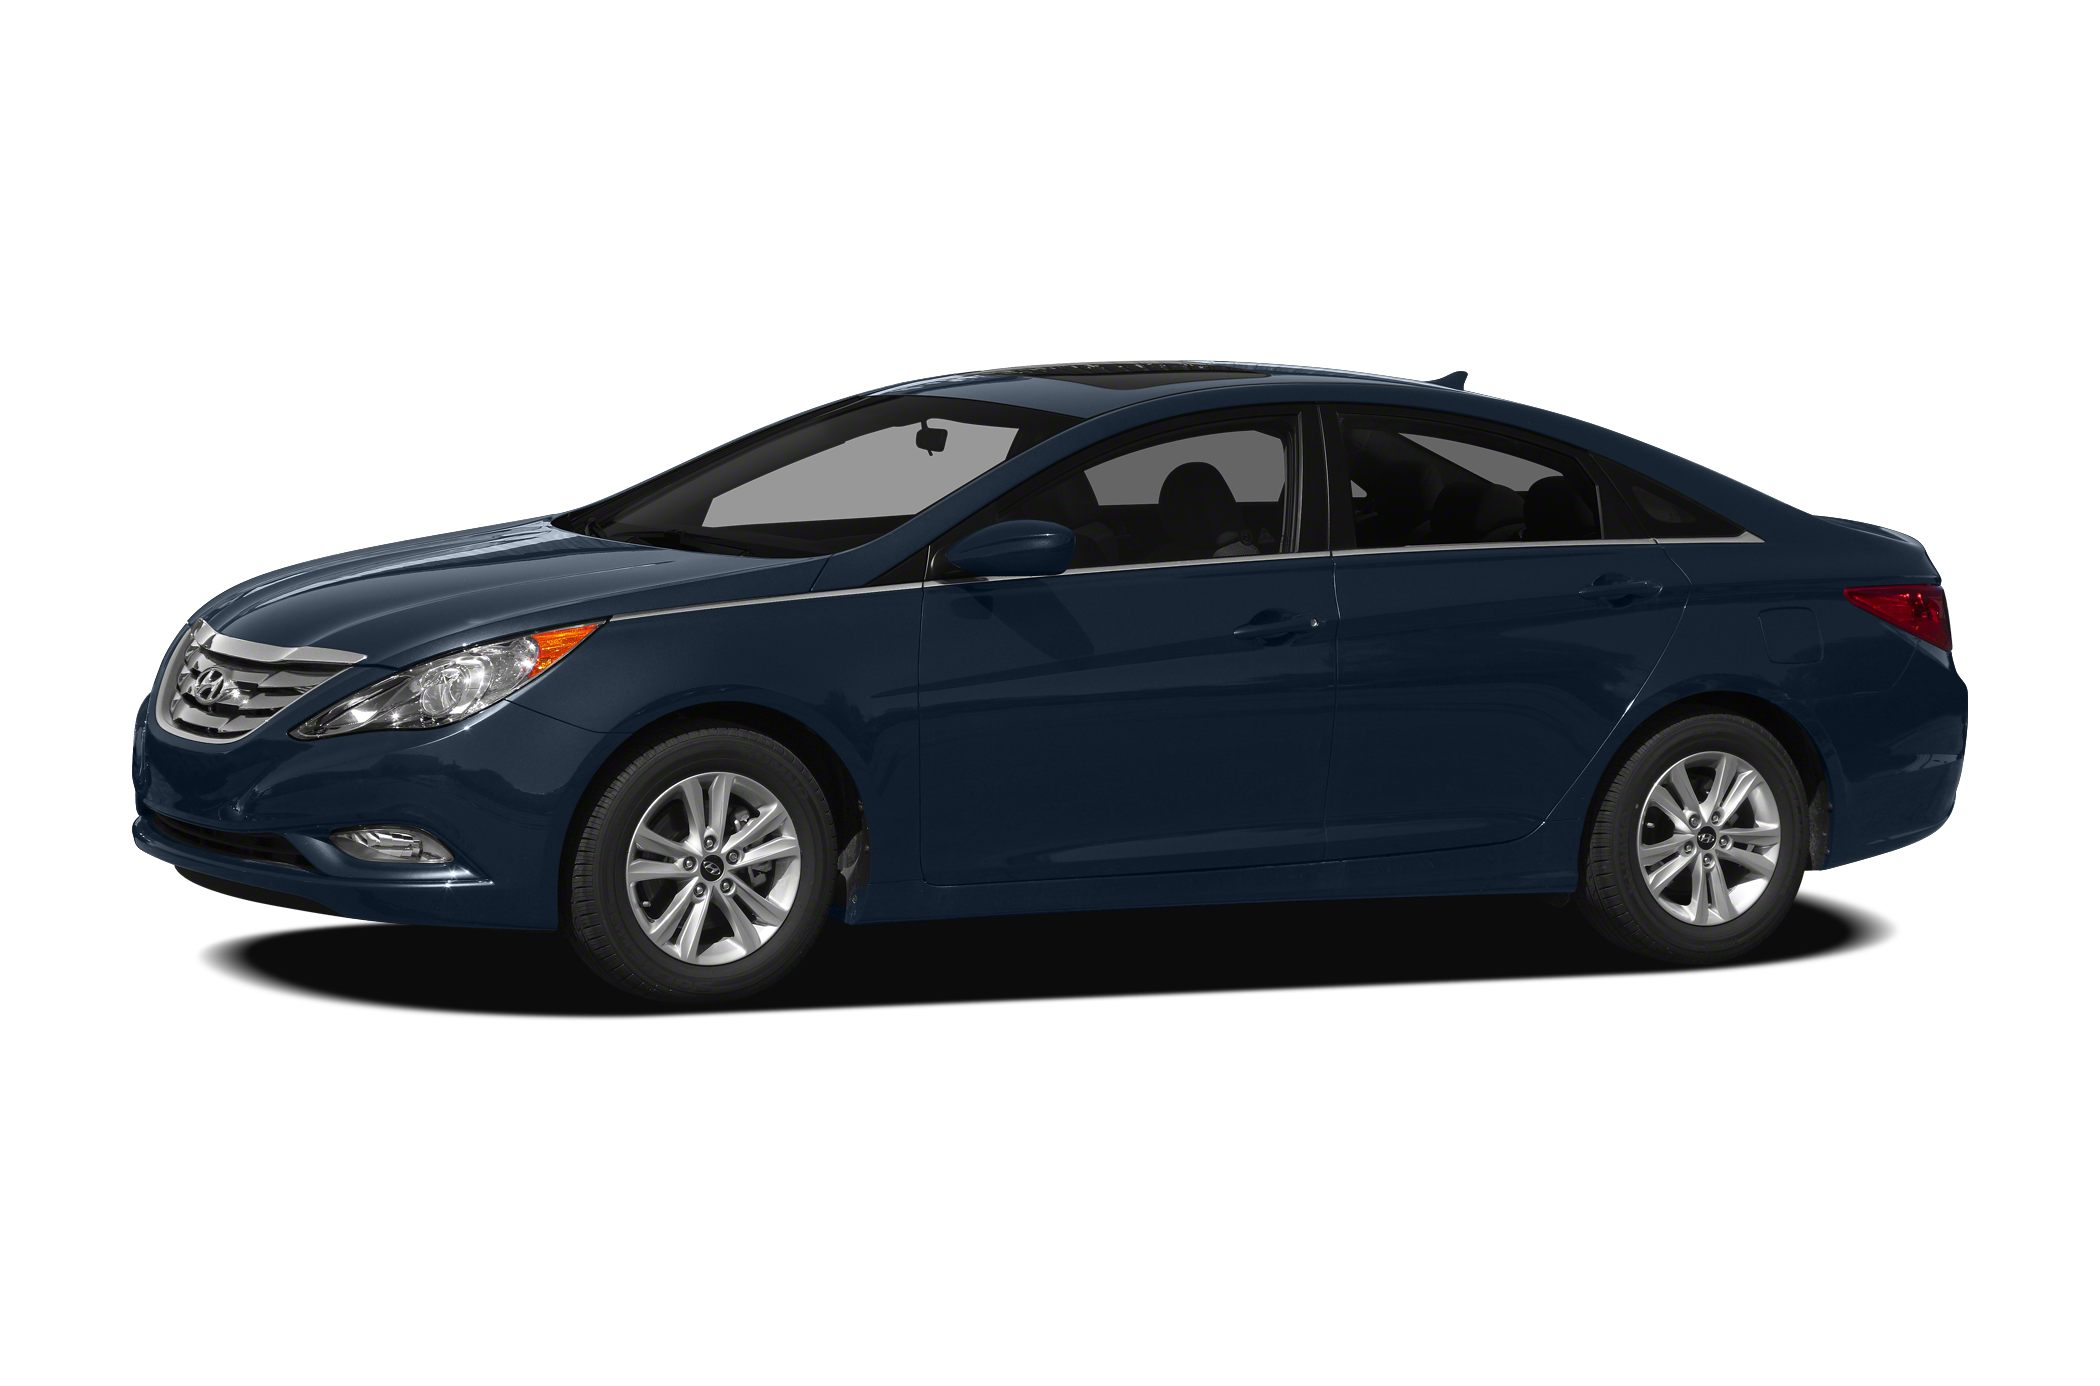 2011 Hyundai Sonata GLS Sedan for sale in Berwick for $12,488 with 60,143 miles